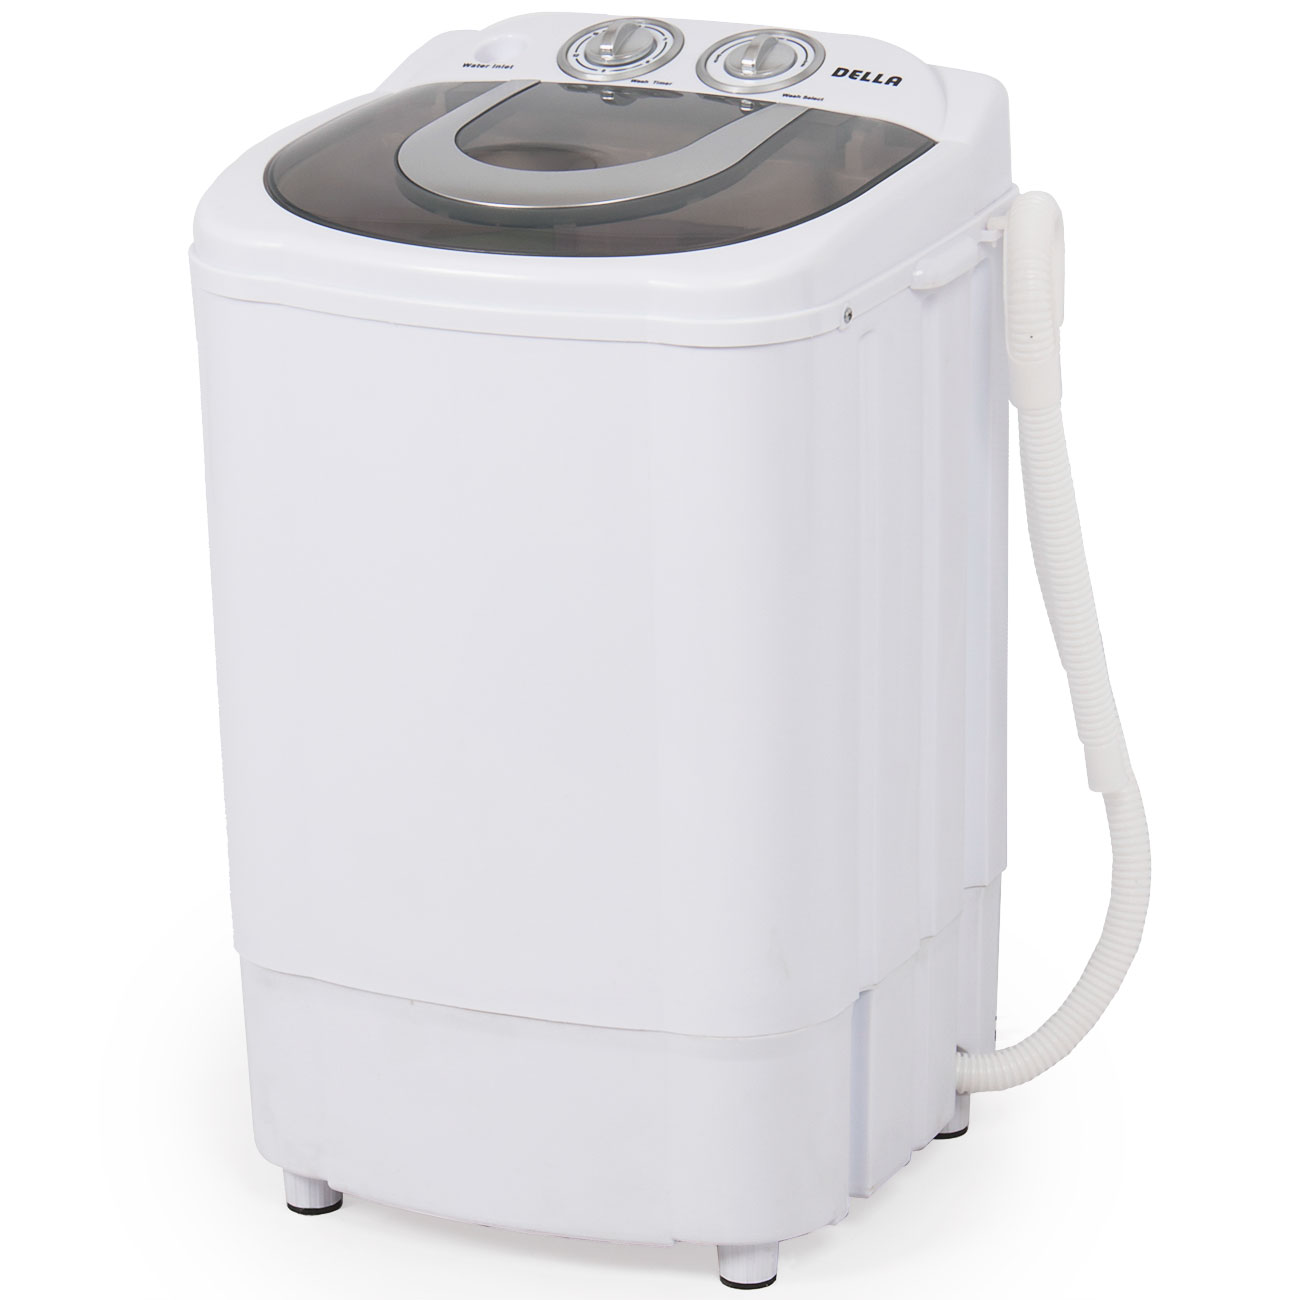 Della Mini Portable Washing Machine U0026 Spin Wash 8.8 Lbs Capacity Compact Laundry  Washer For Clothes